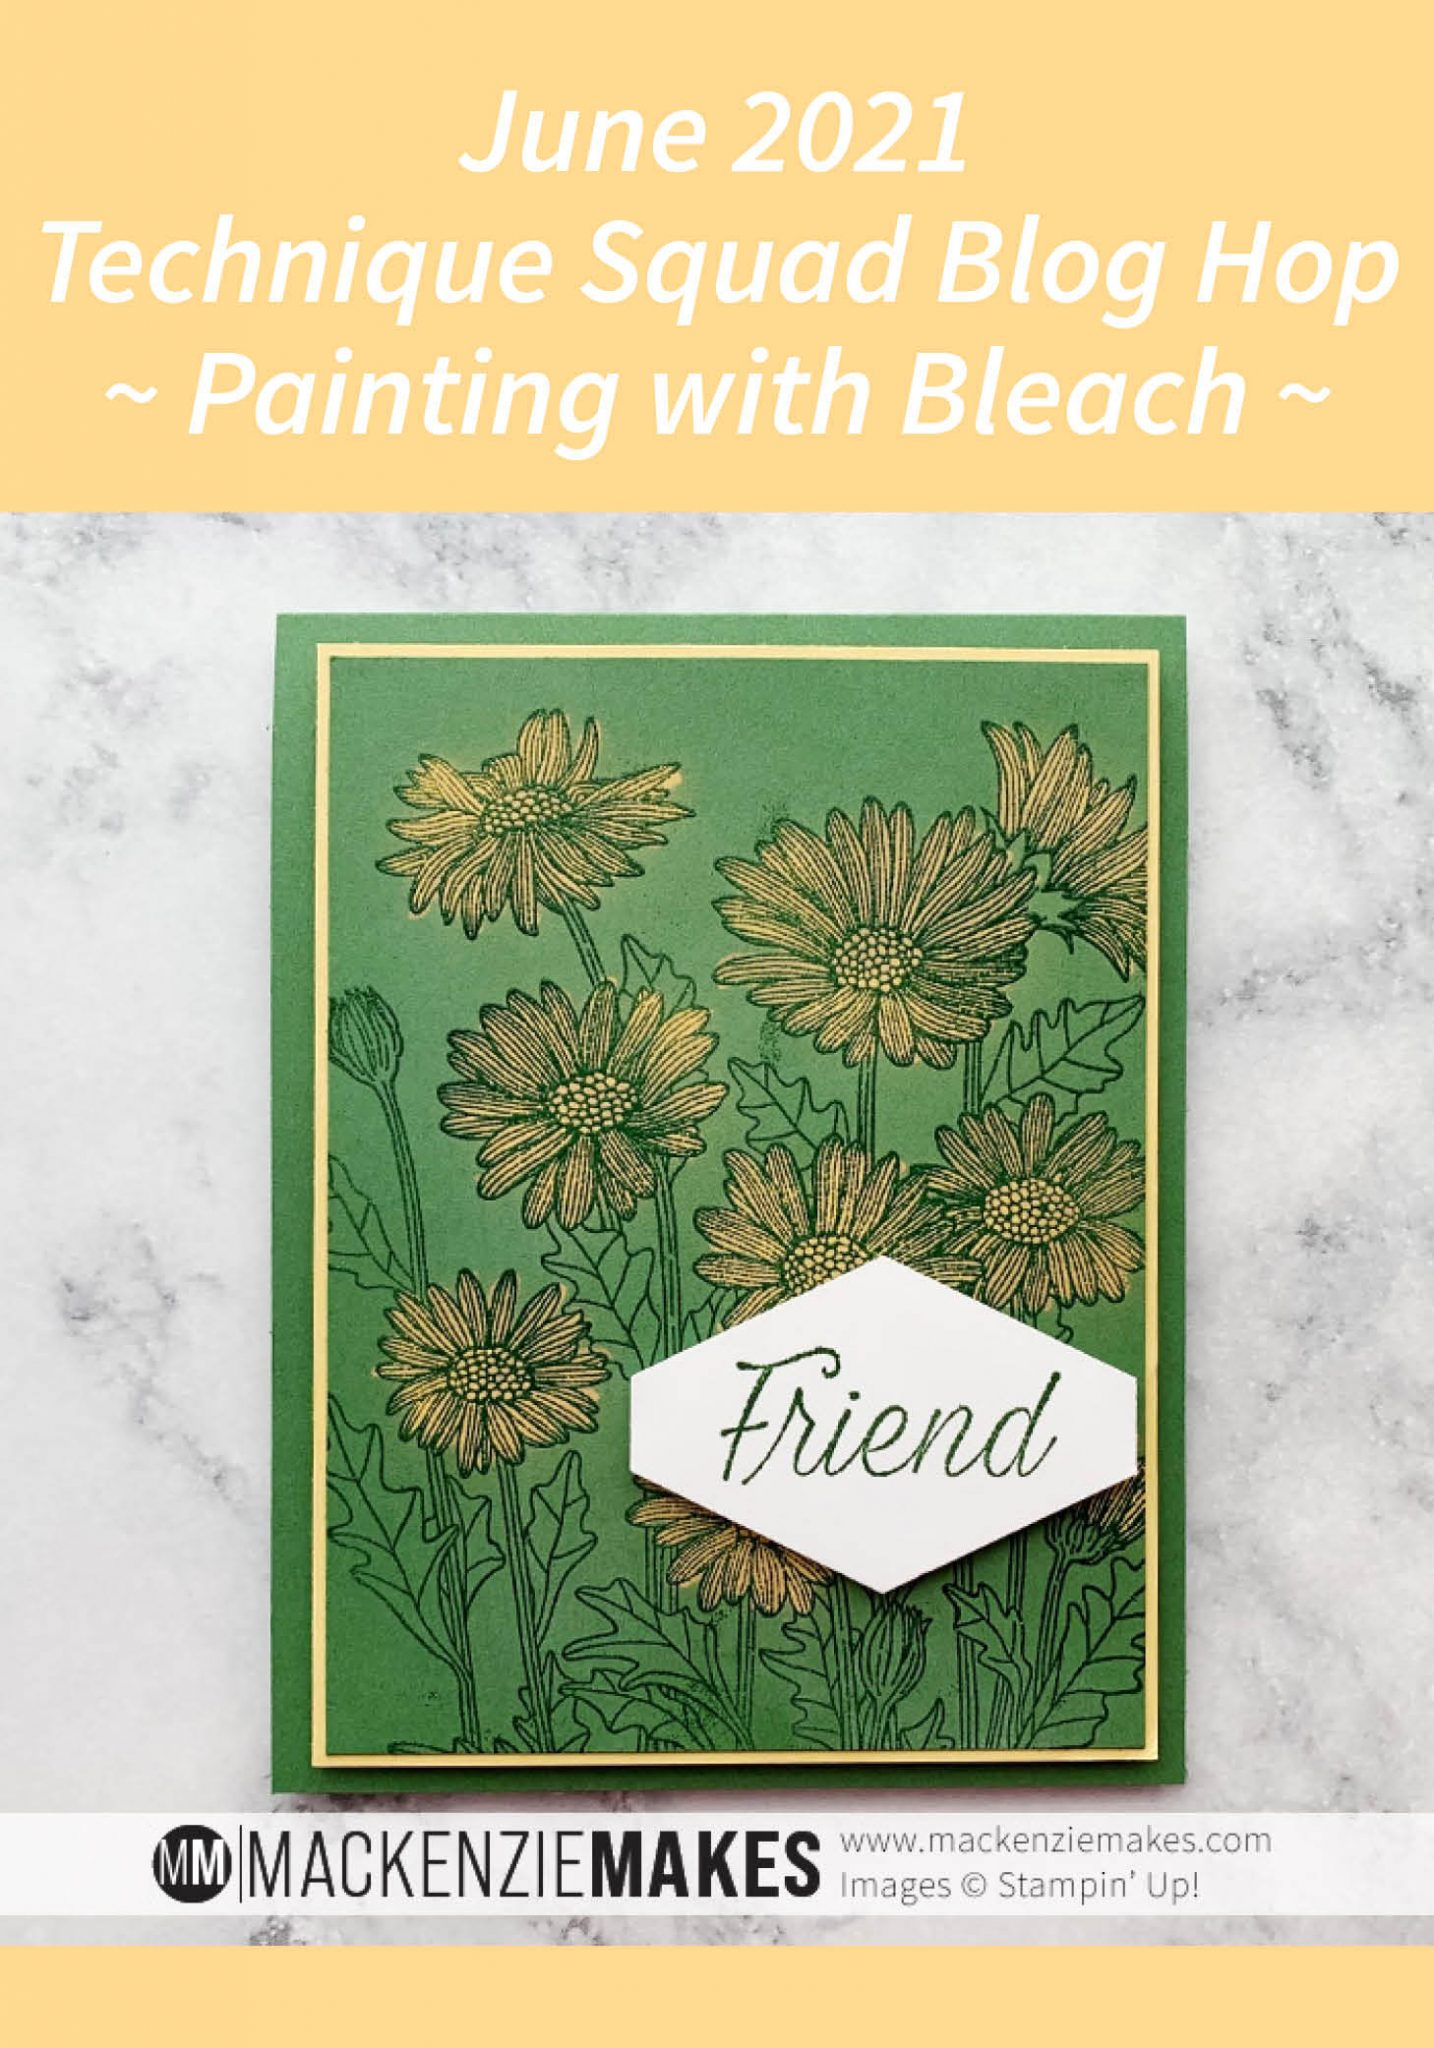 June 2021 Technique Squad Blog Hop - Painting with Bleach – Learn how to make a card using the painting with bleach technique. | #mackenziemakes #stampinup | www.mackenziemakes.com